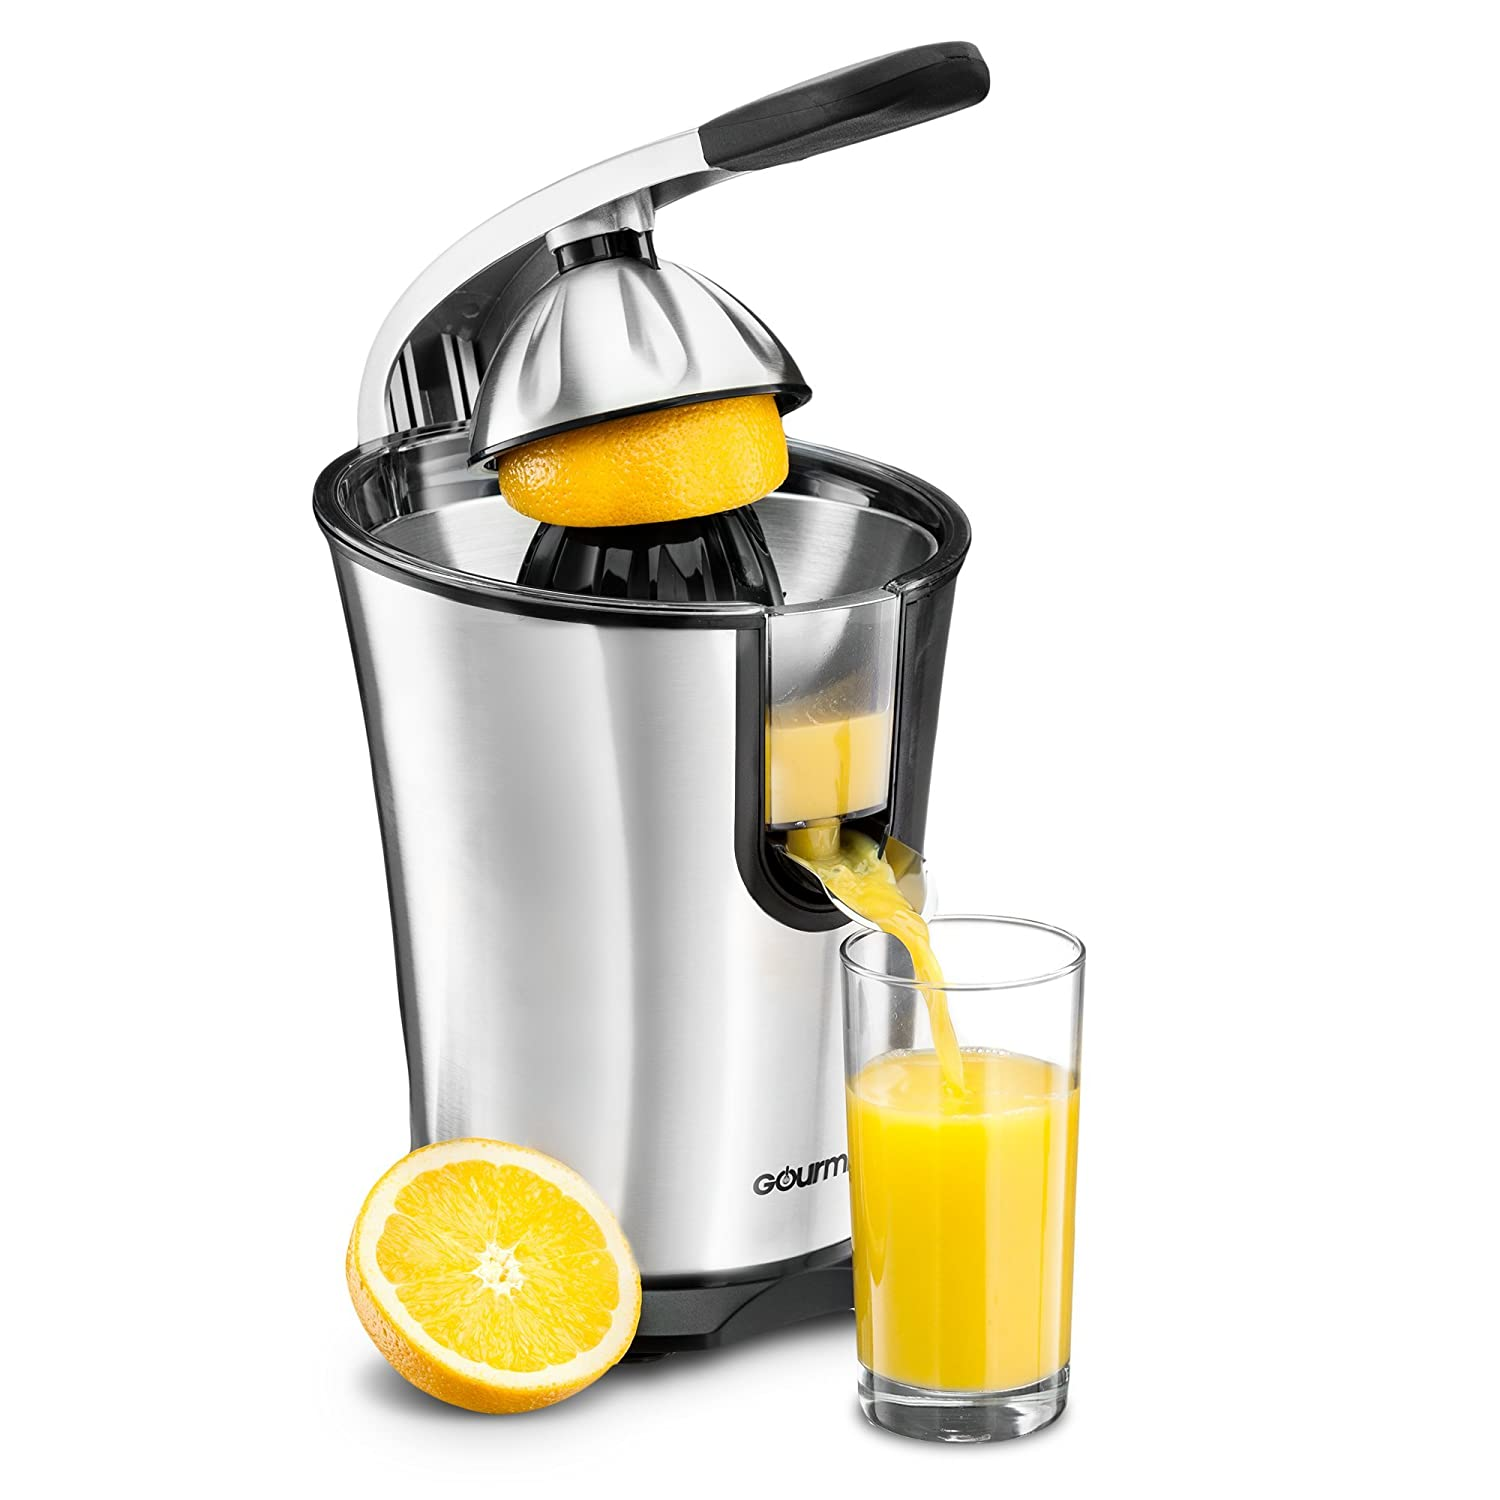 Gourmia EPJ100 Electric Citrus Juicer Stainless Steel 10 QT 160 Watts Rubber Handle